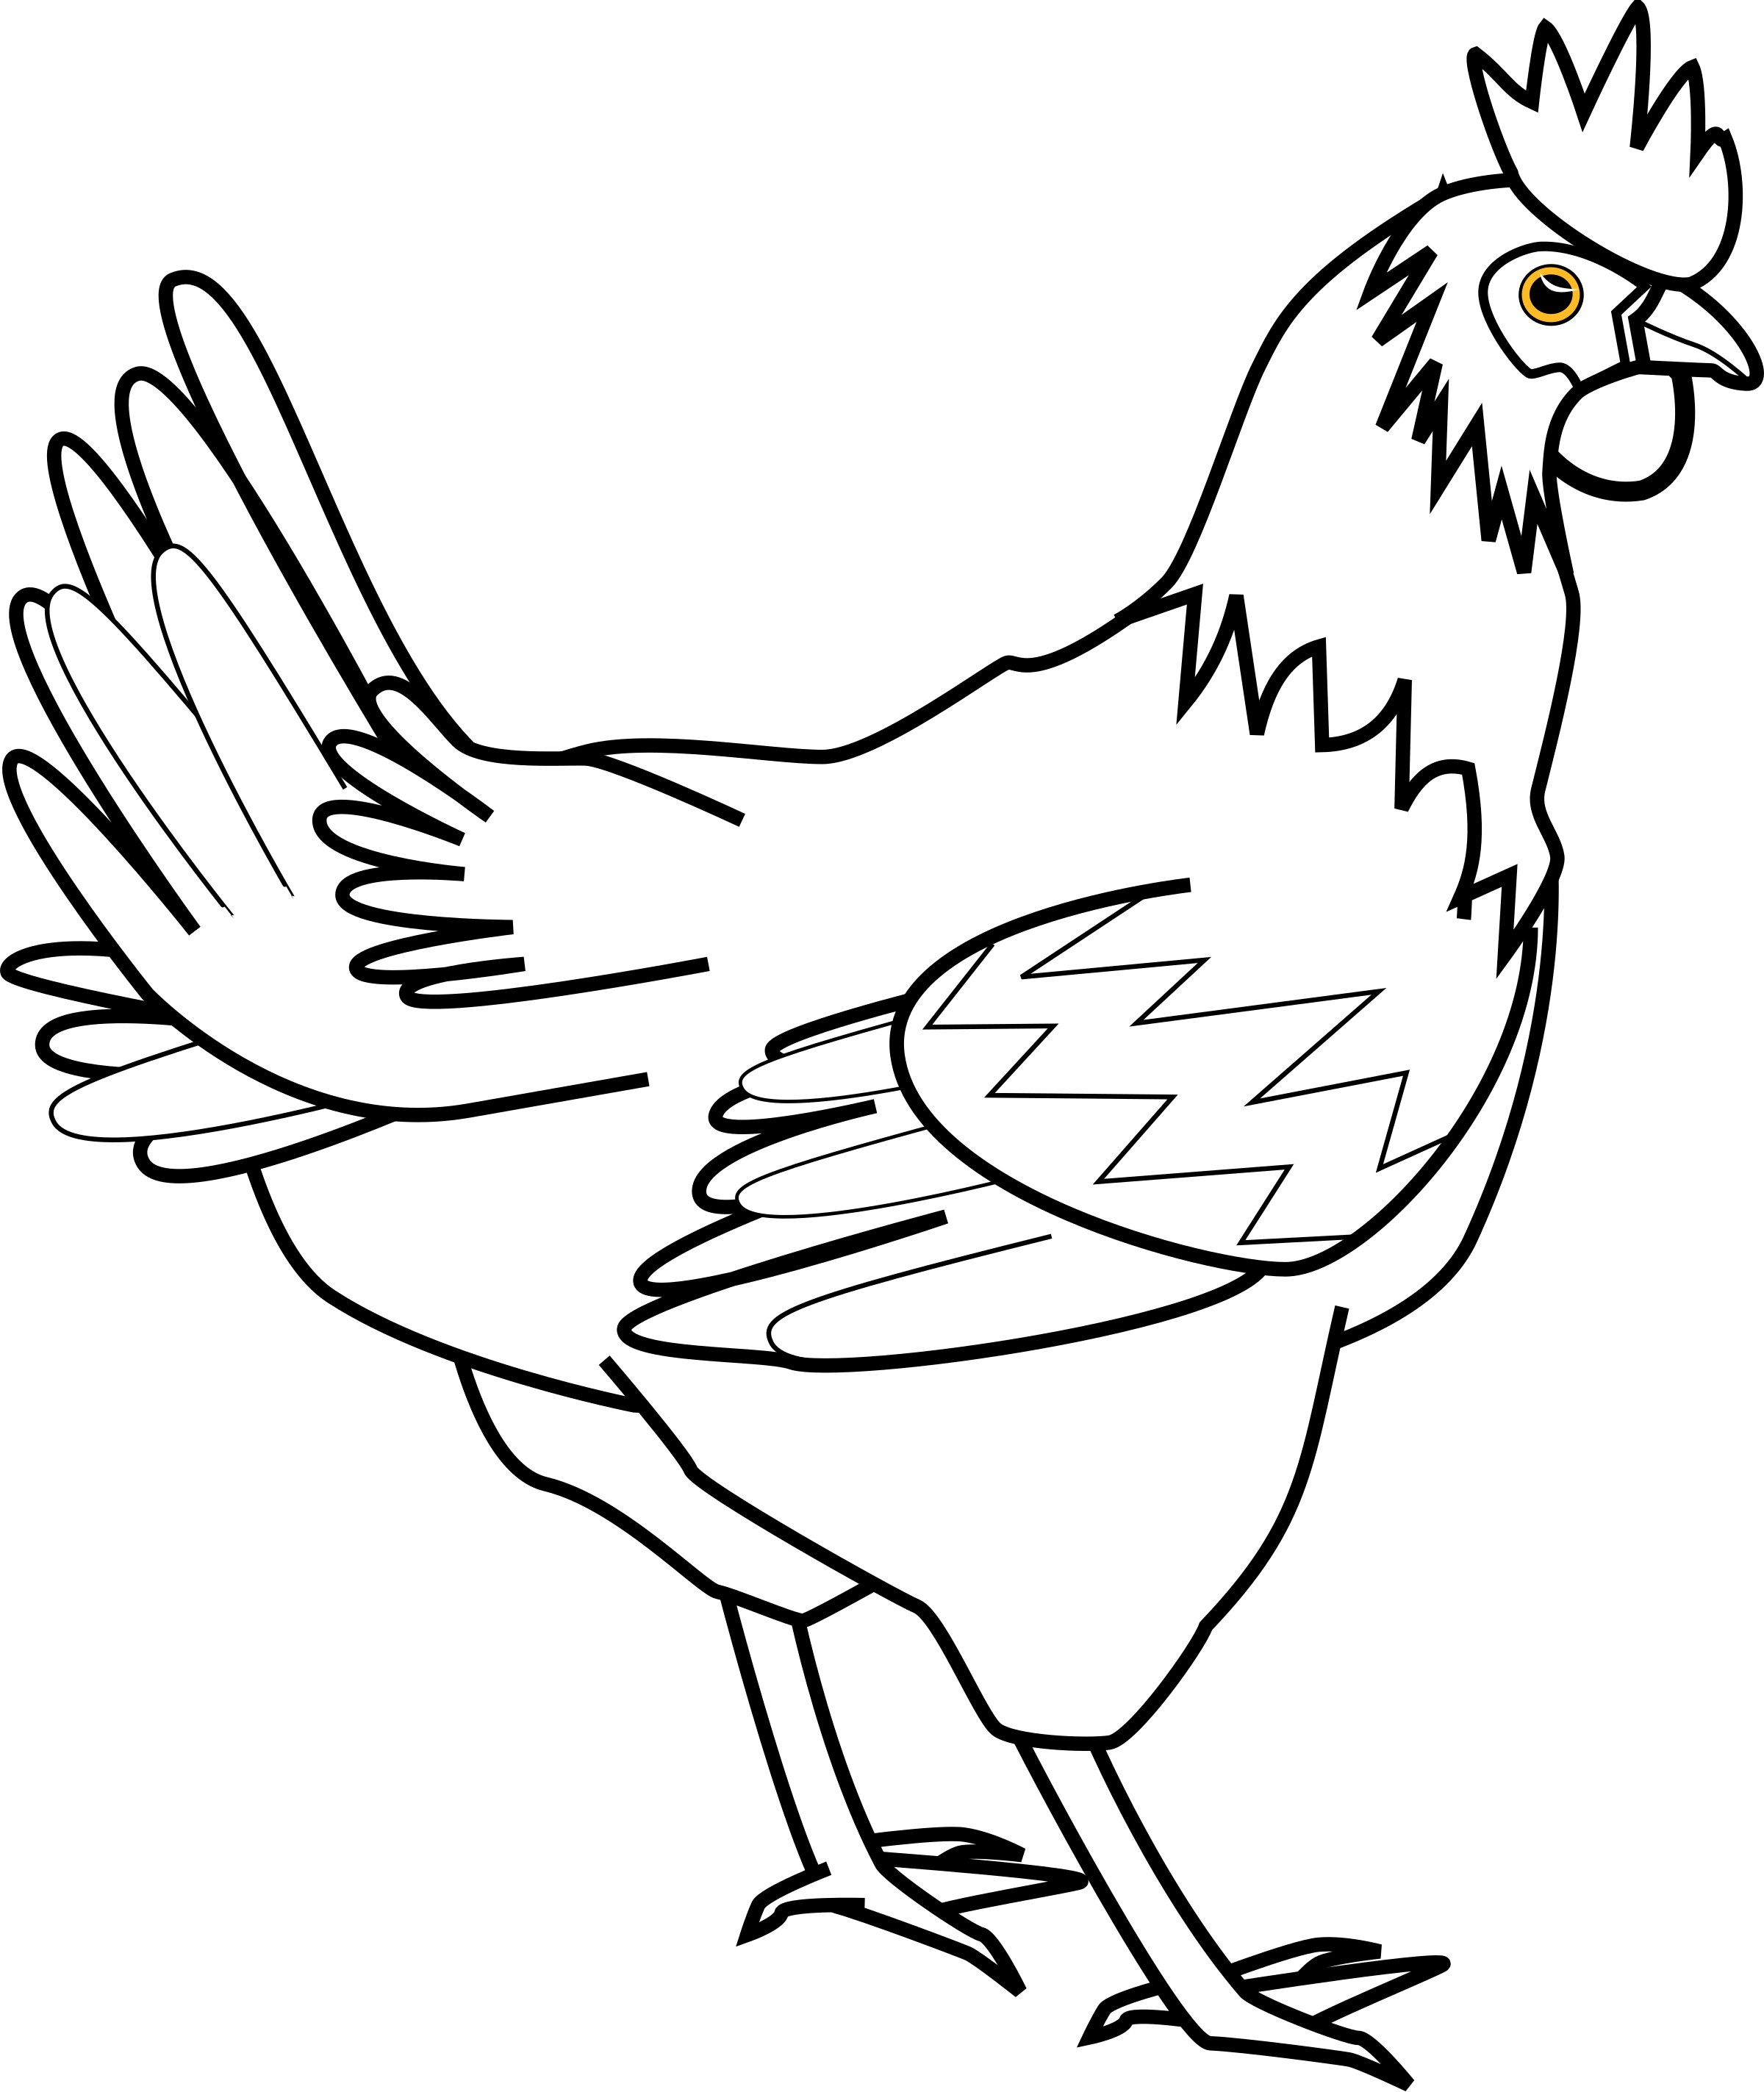 Animals clipart chicken. Line drawing at getdrawings